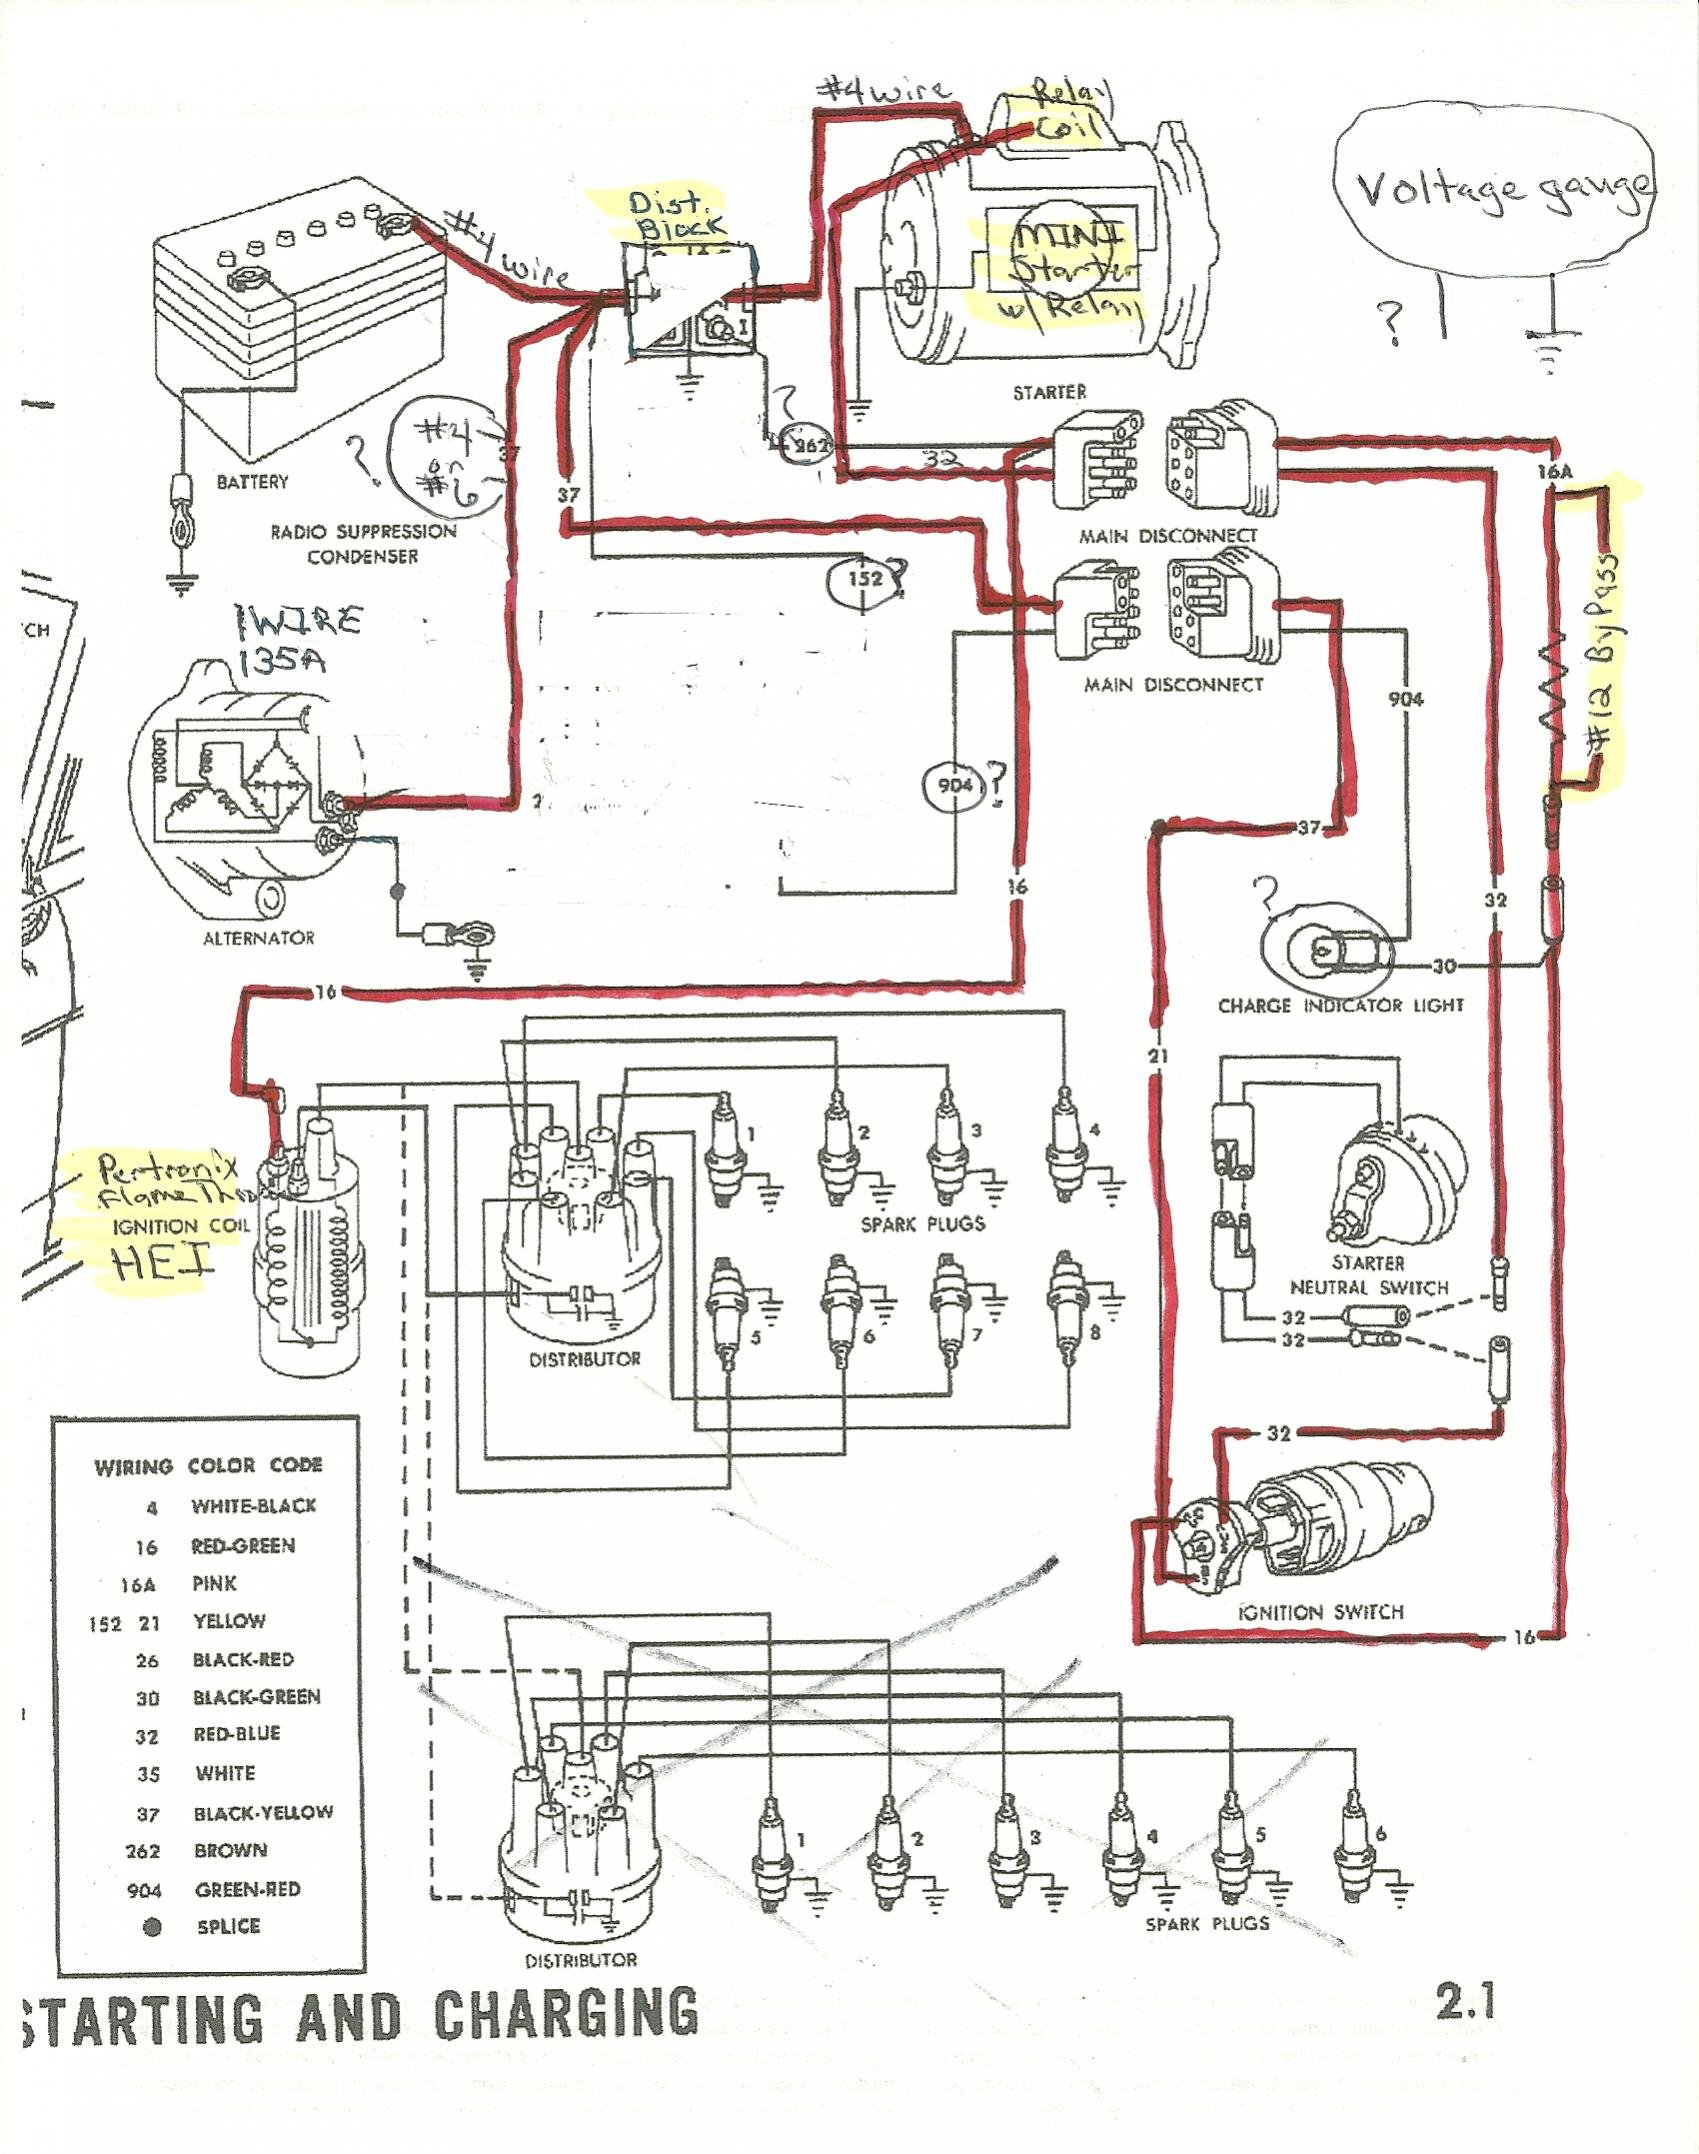 Ford Alternator Wire Diagram 2 Wiring Library 1985 Mustang 1965 Starter And Distributor Forum Dodge Diesel Voltage Regulator